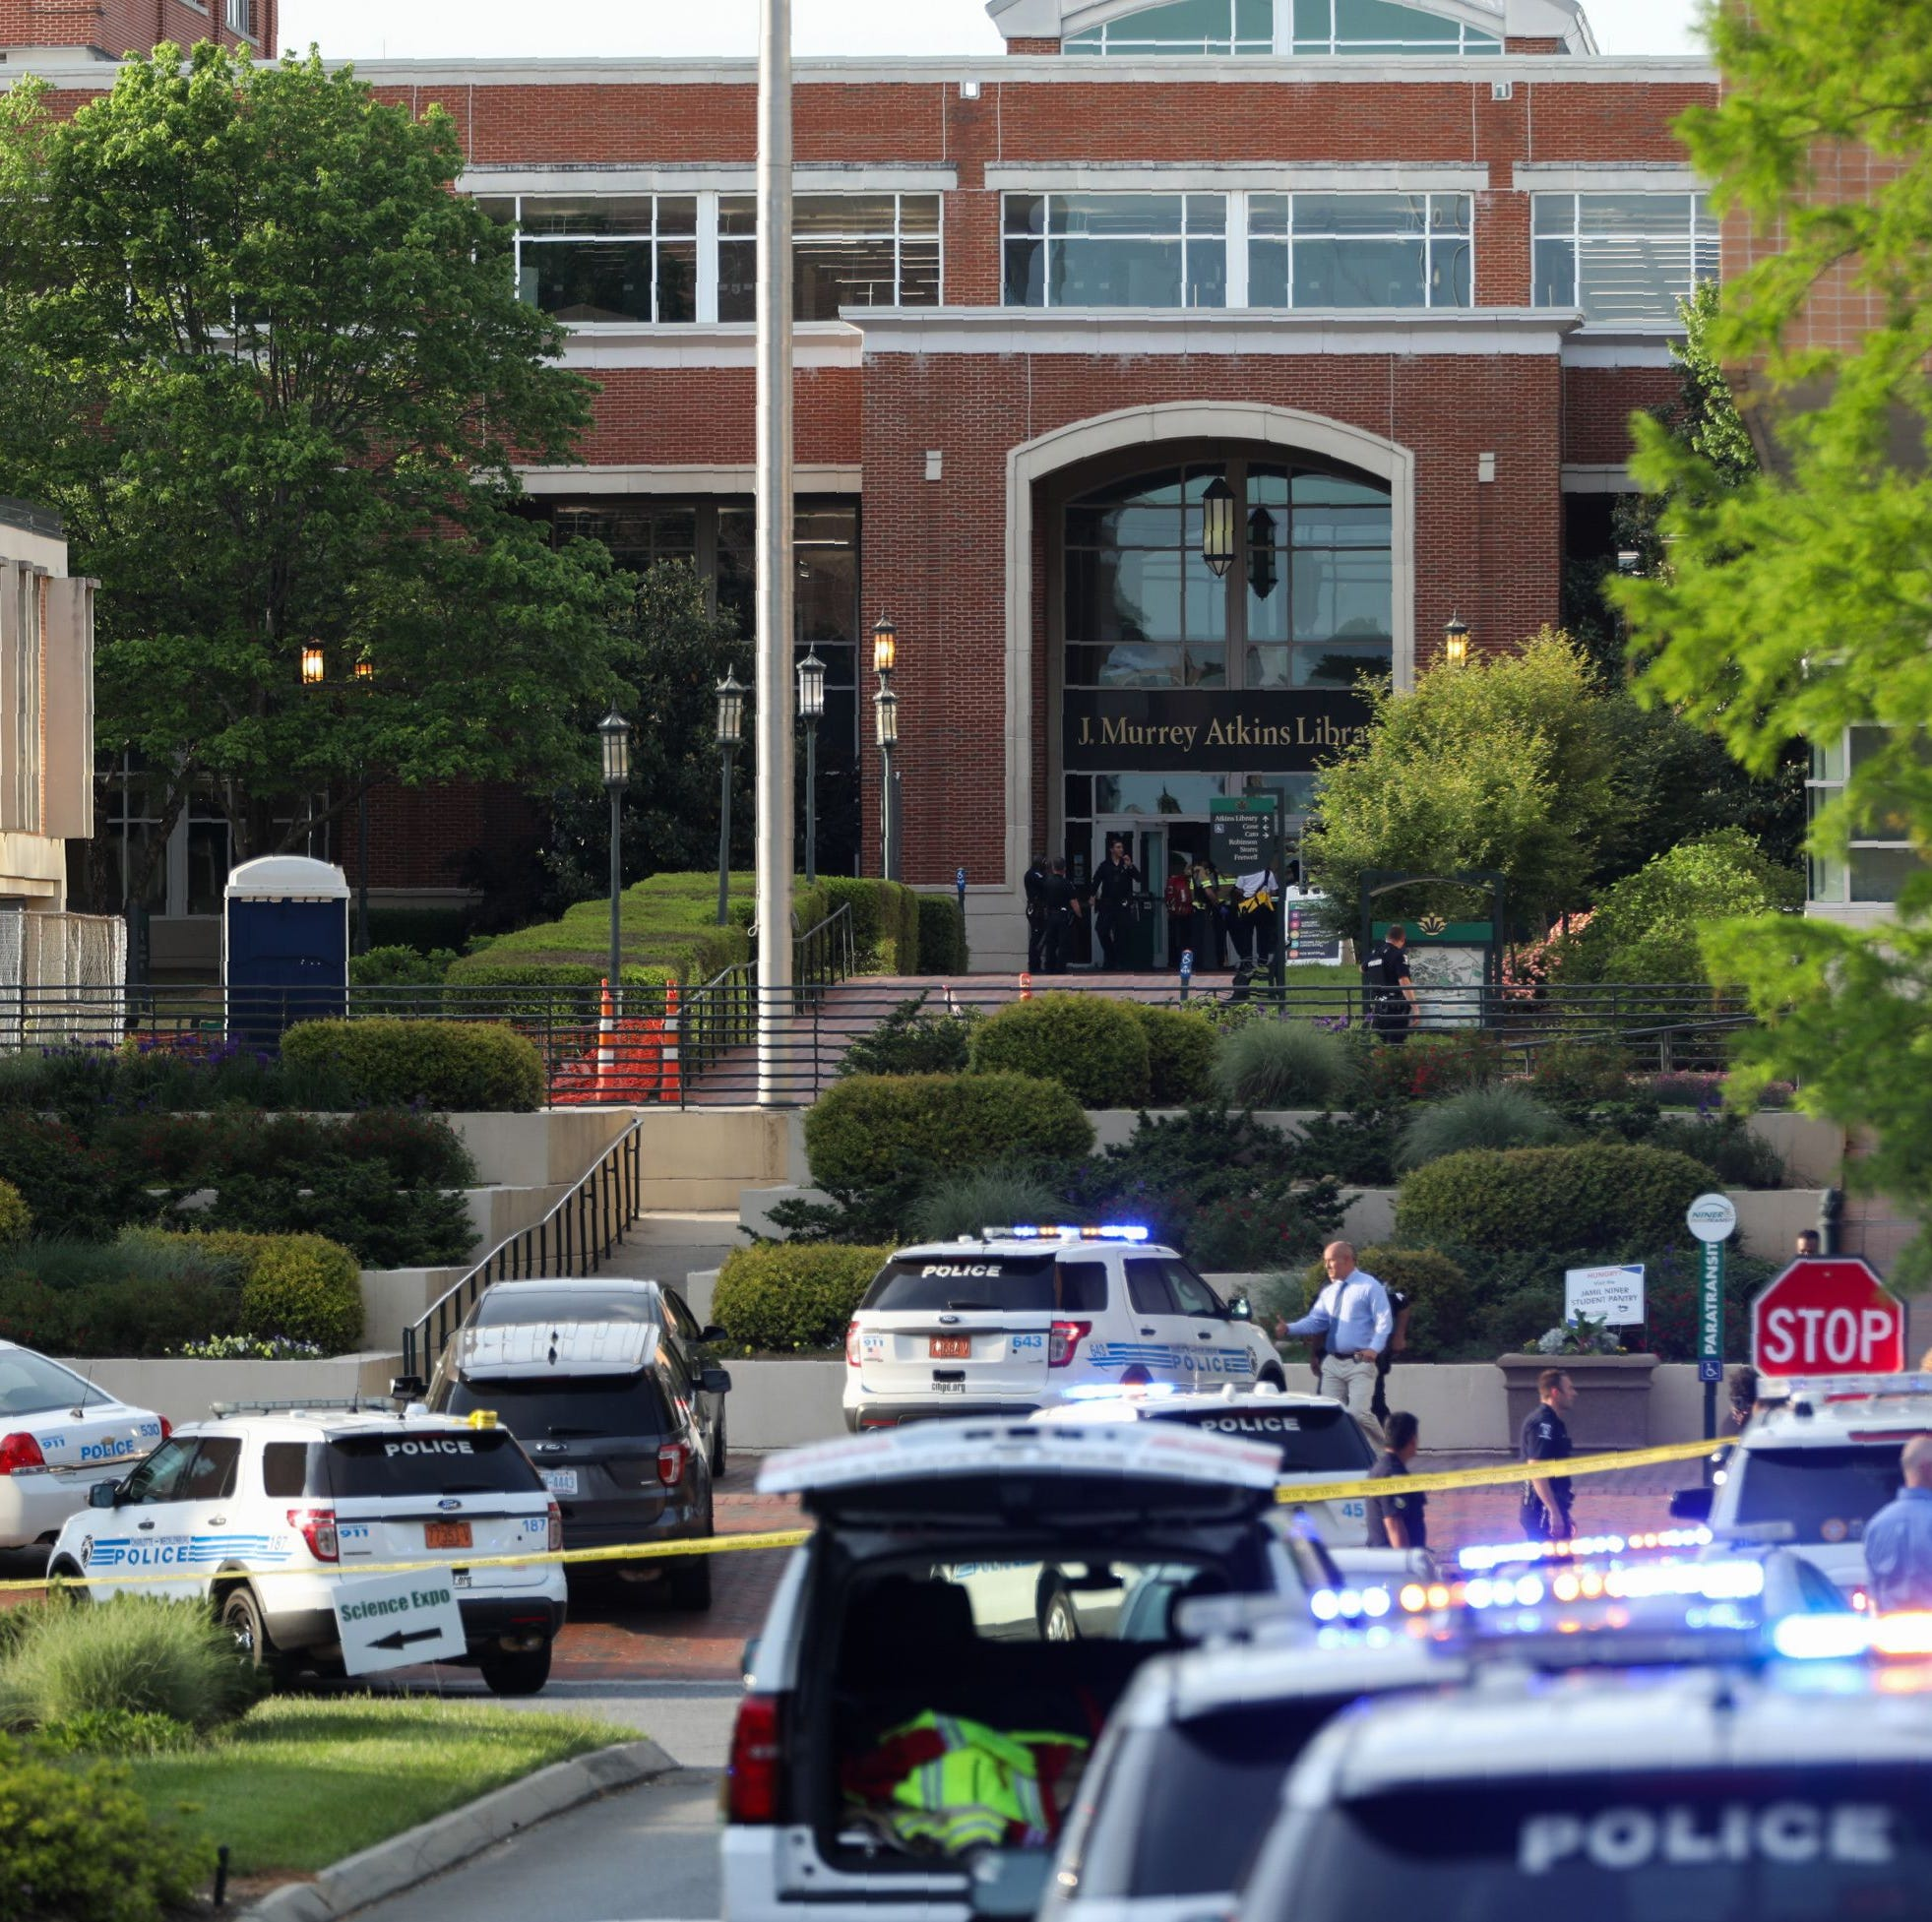 UNC Charlotte shooting suspect is a 22-year-old former student who majored in history